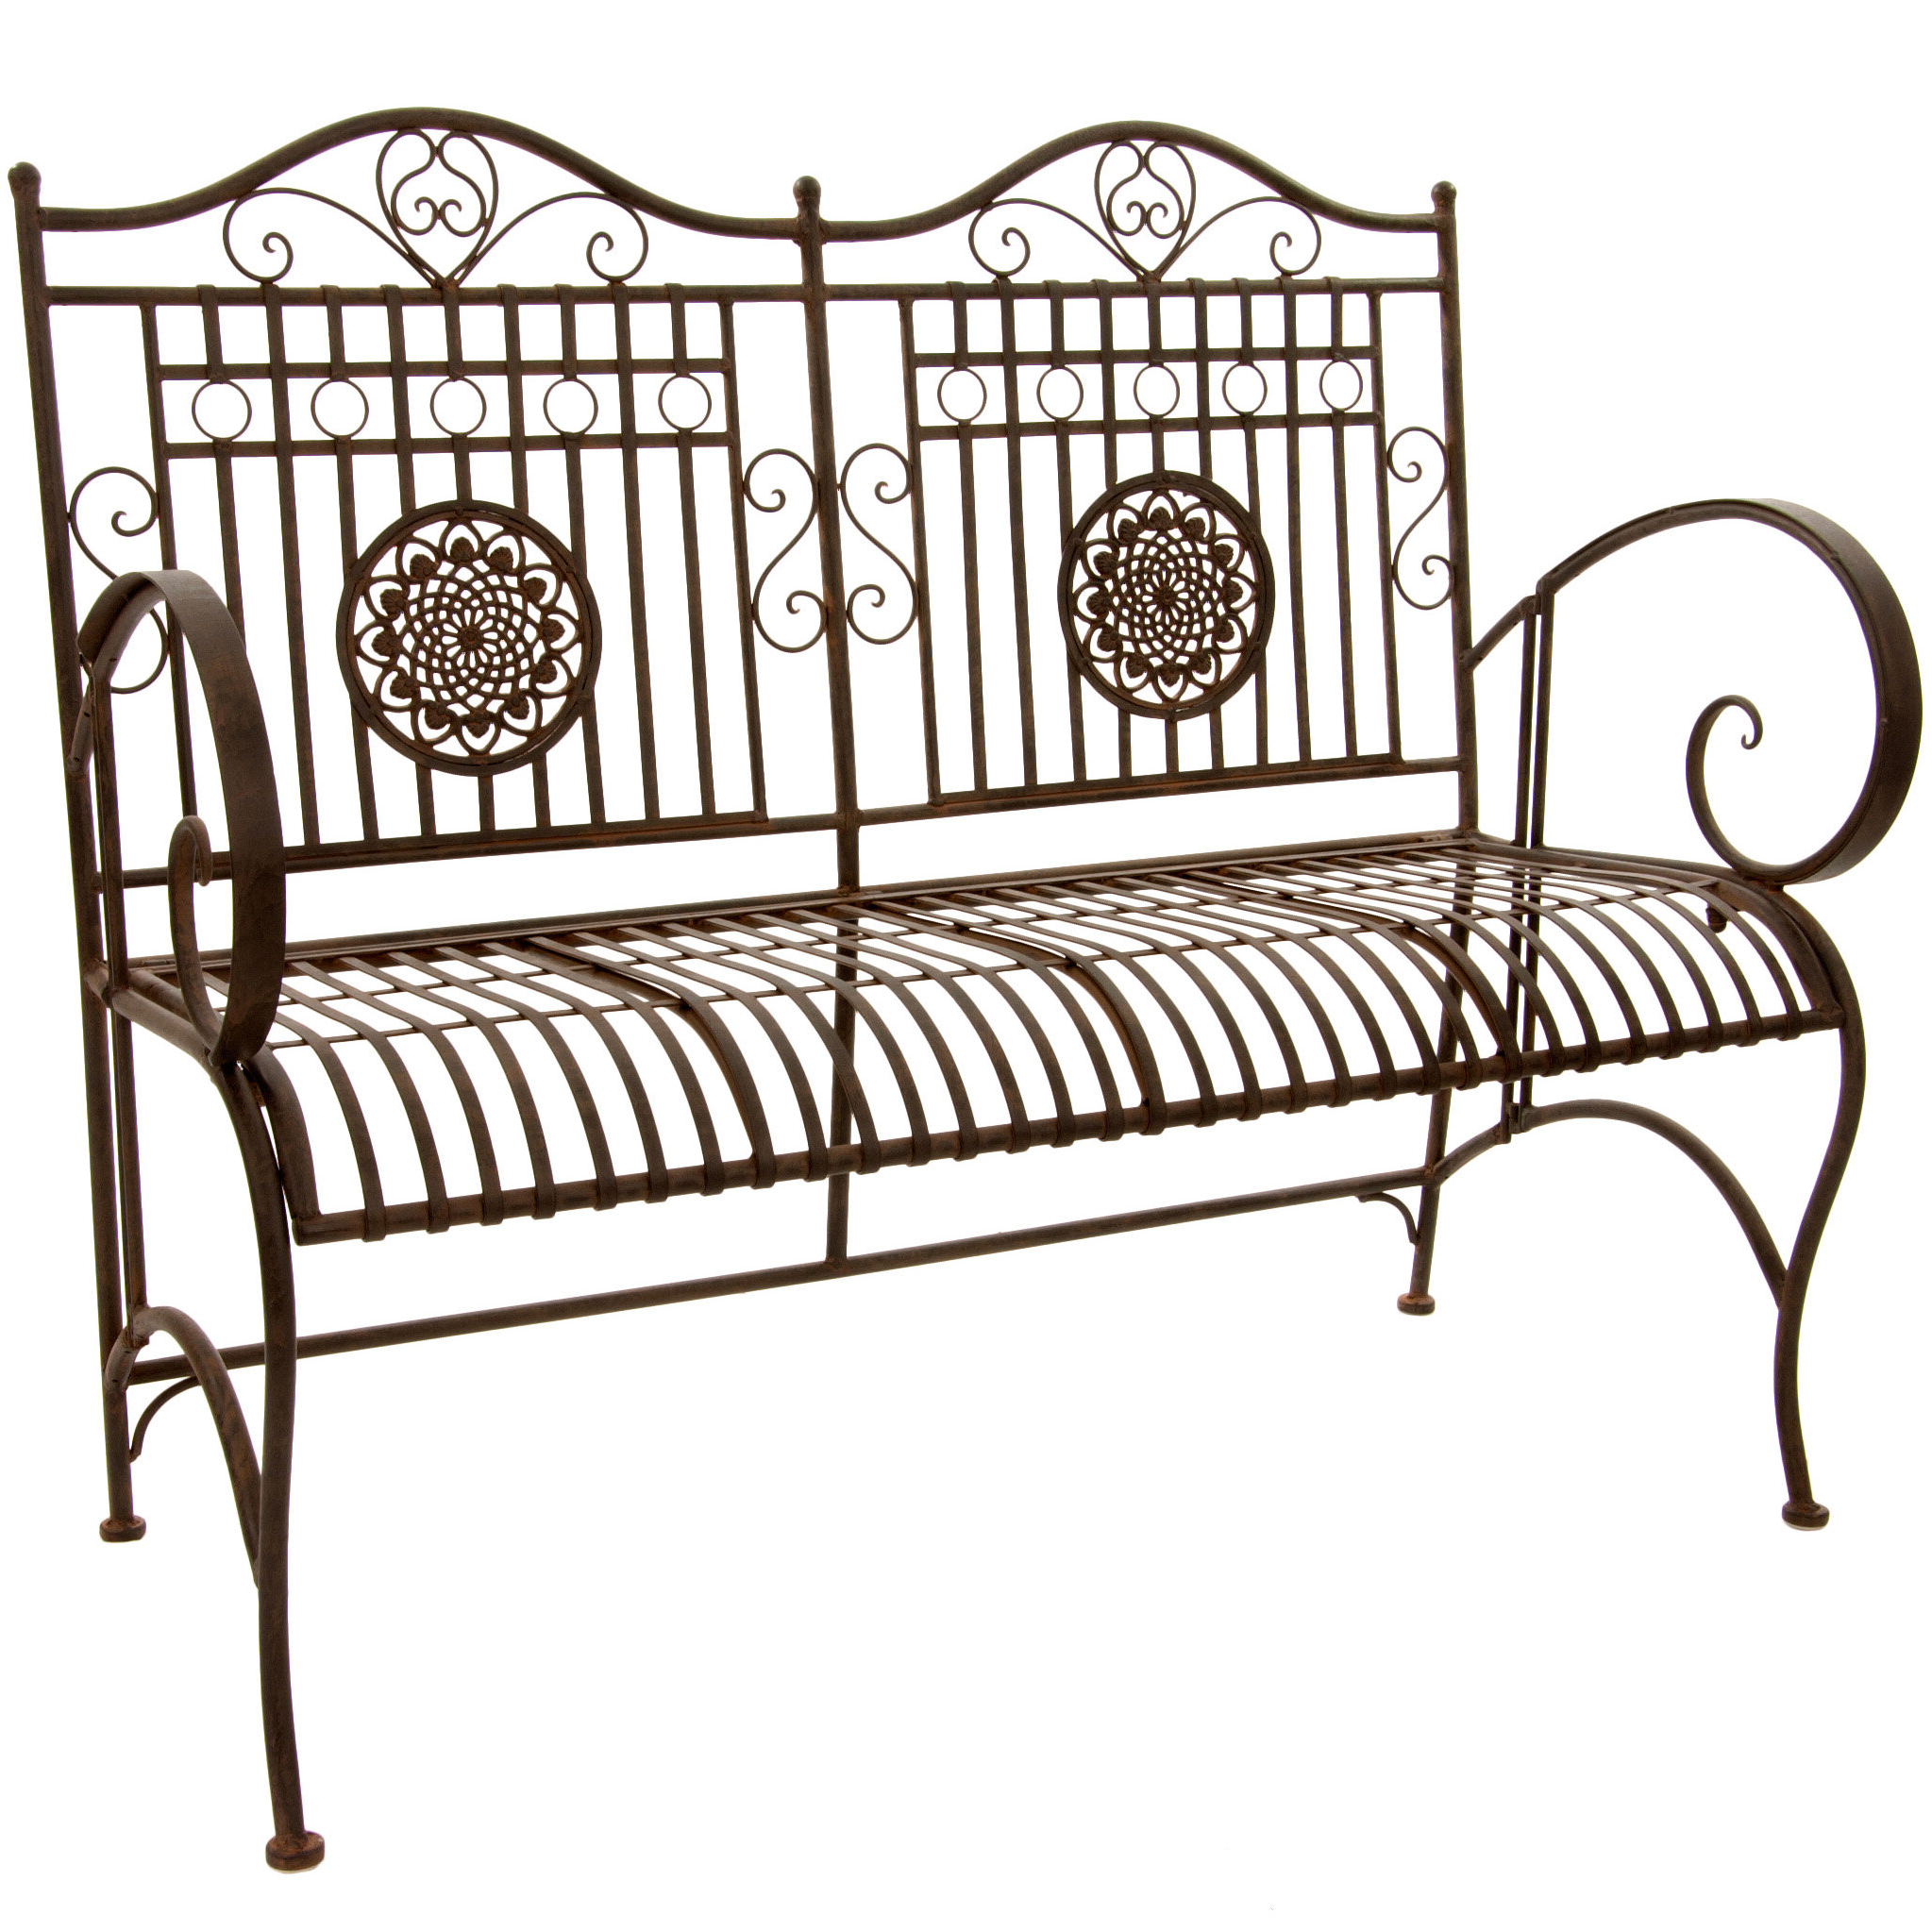 Bodner Rustic Metal Garden Bench For Most Recent Strasburg Blossoming Decorative Iron Garden Benches (View 6 of 30)